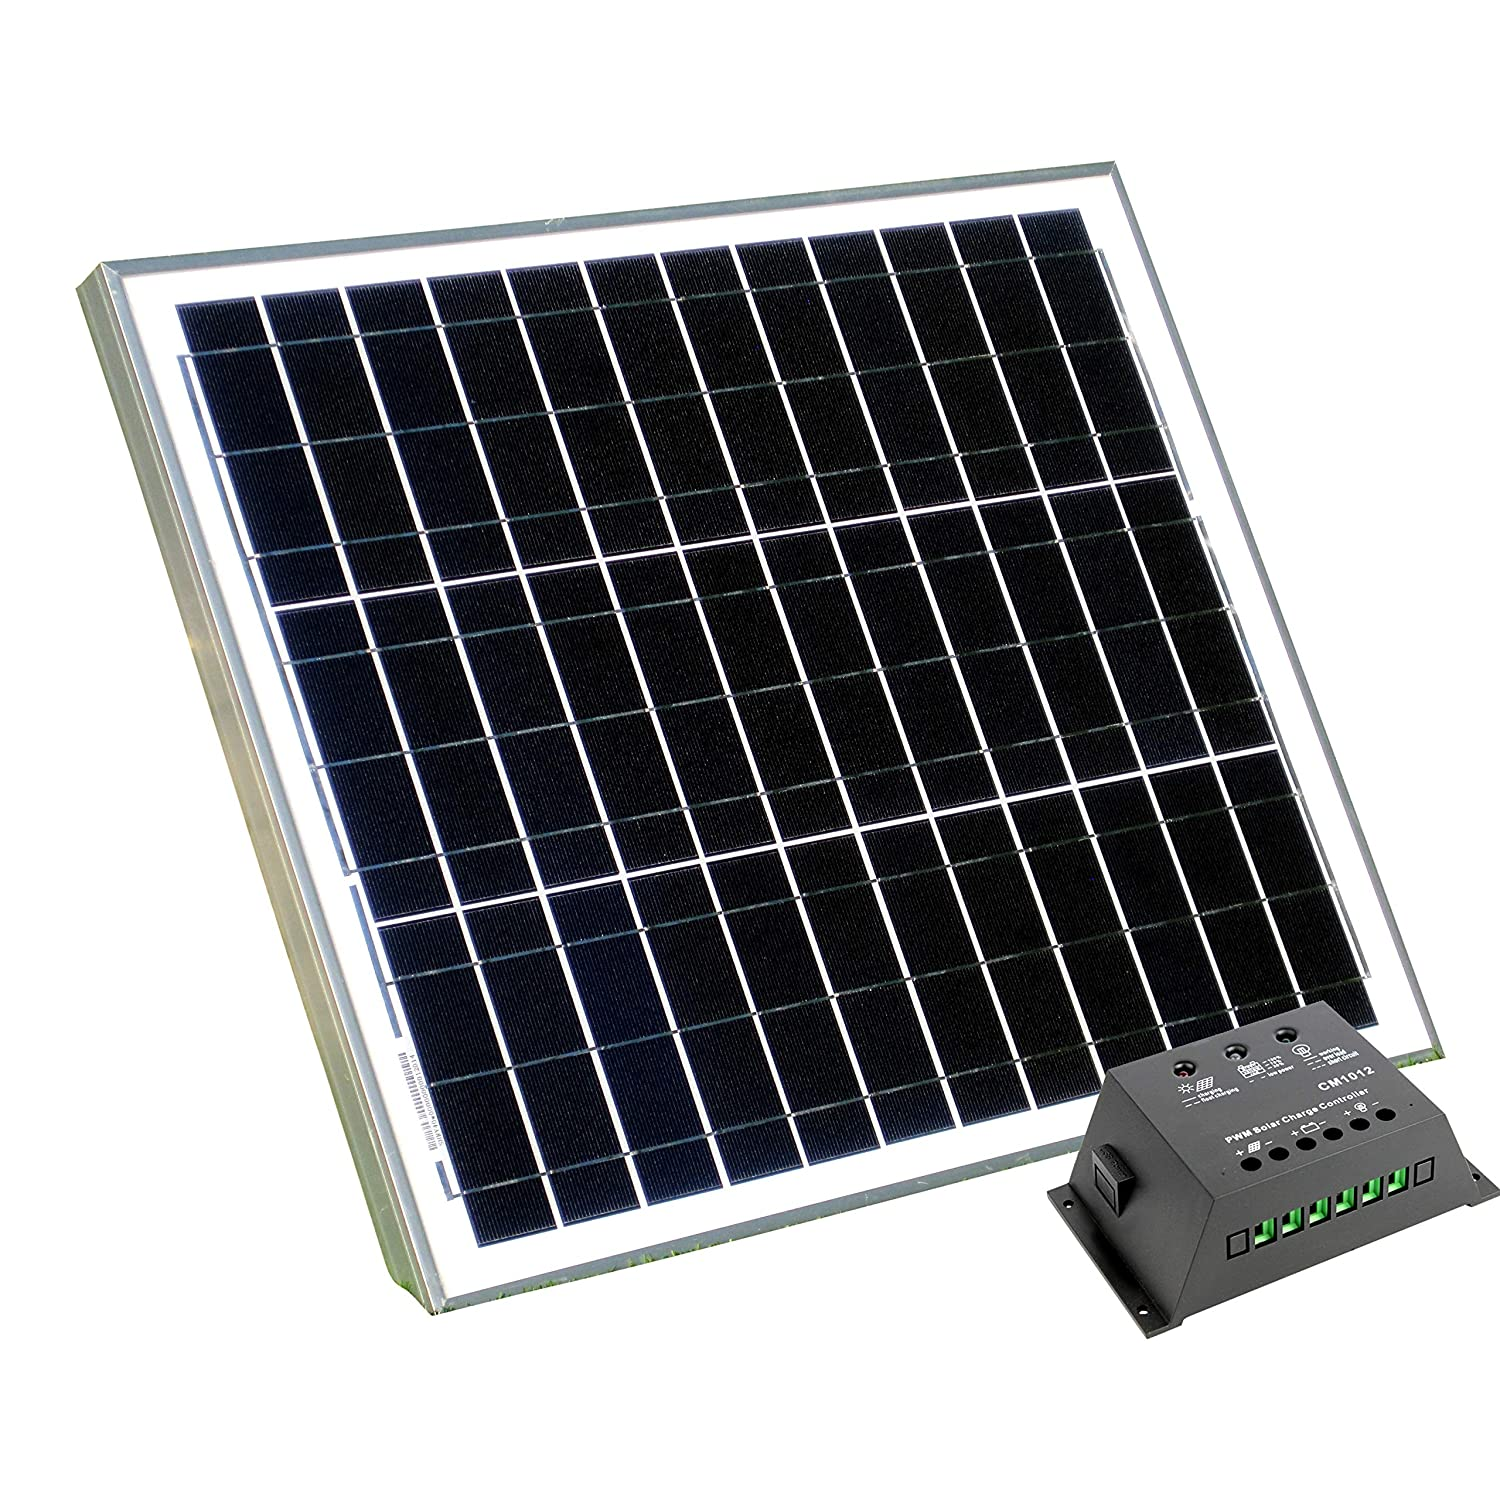 100w Waterproof Solar Cells Solar Panel Kit 10A Controller for Boat Home Camping